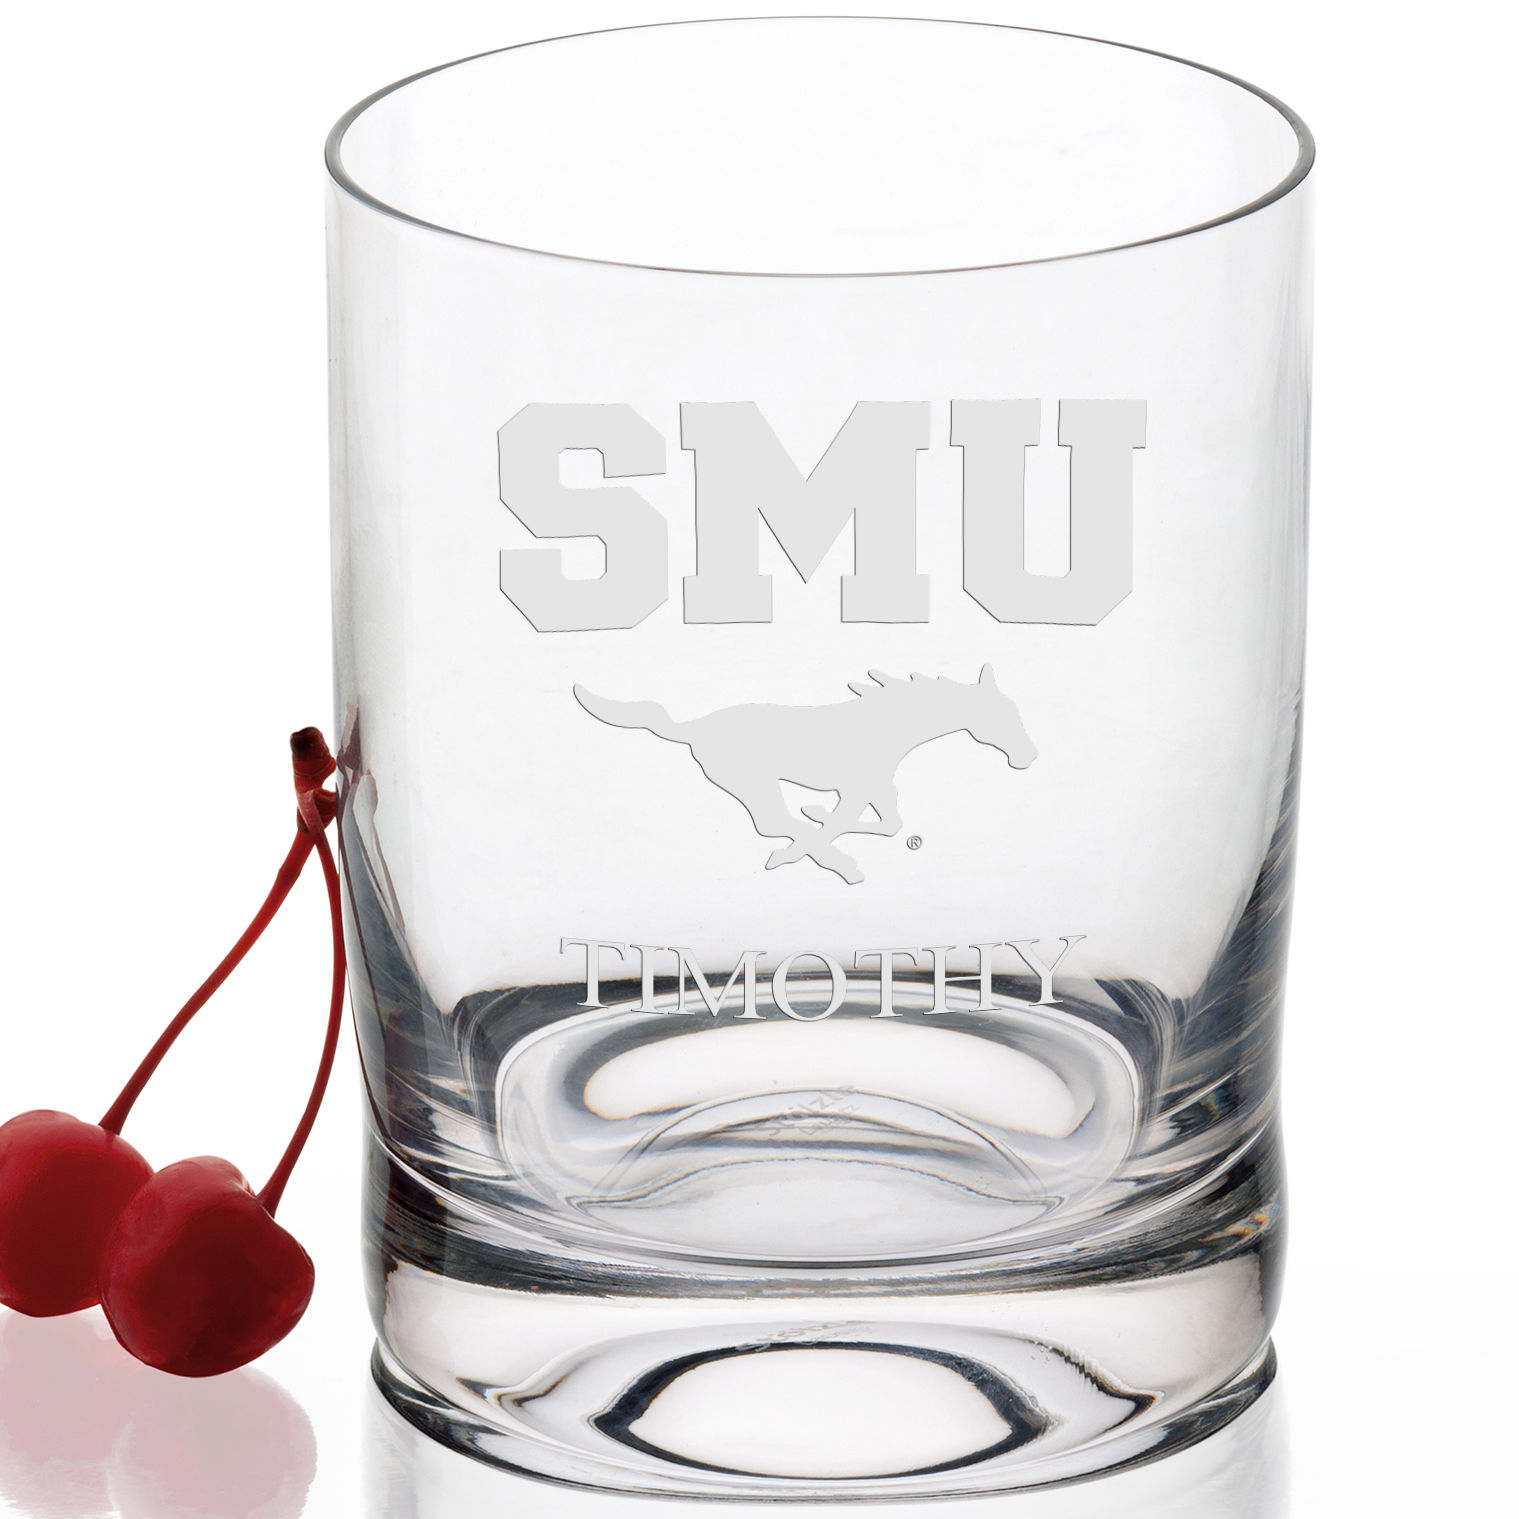 Southern Methodist University Tumbler Glasses - Set of 4 - Image 2